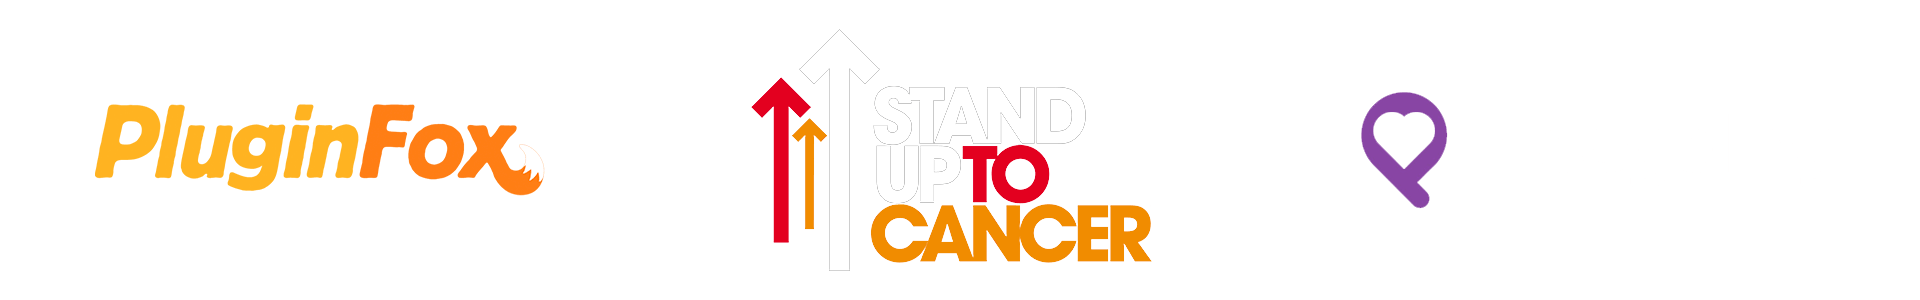 PluginFox Stand Up To Cancer Banner